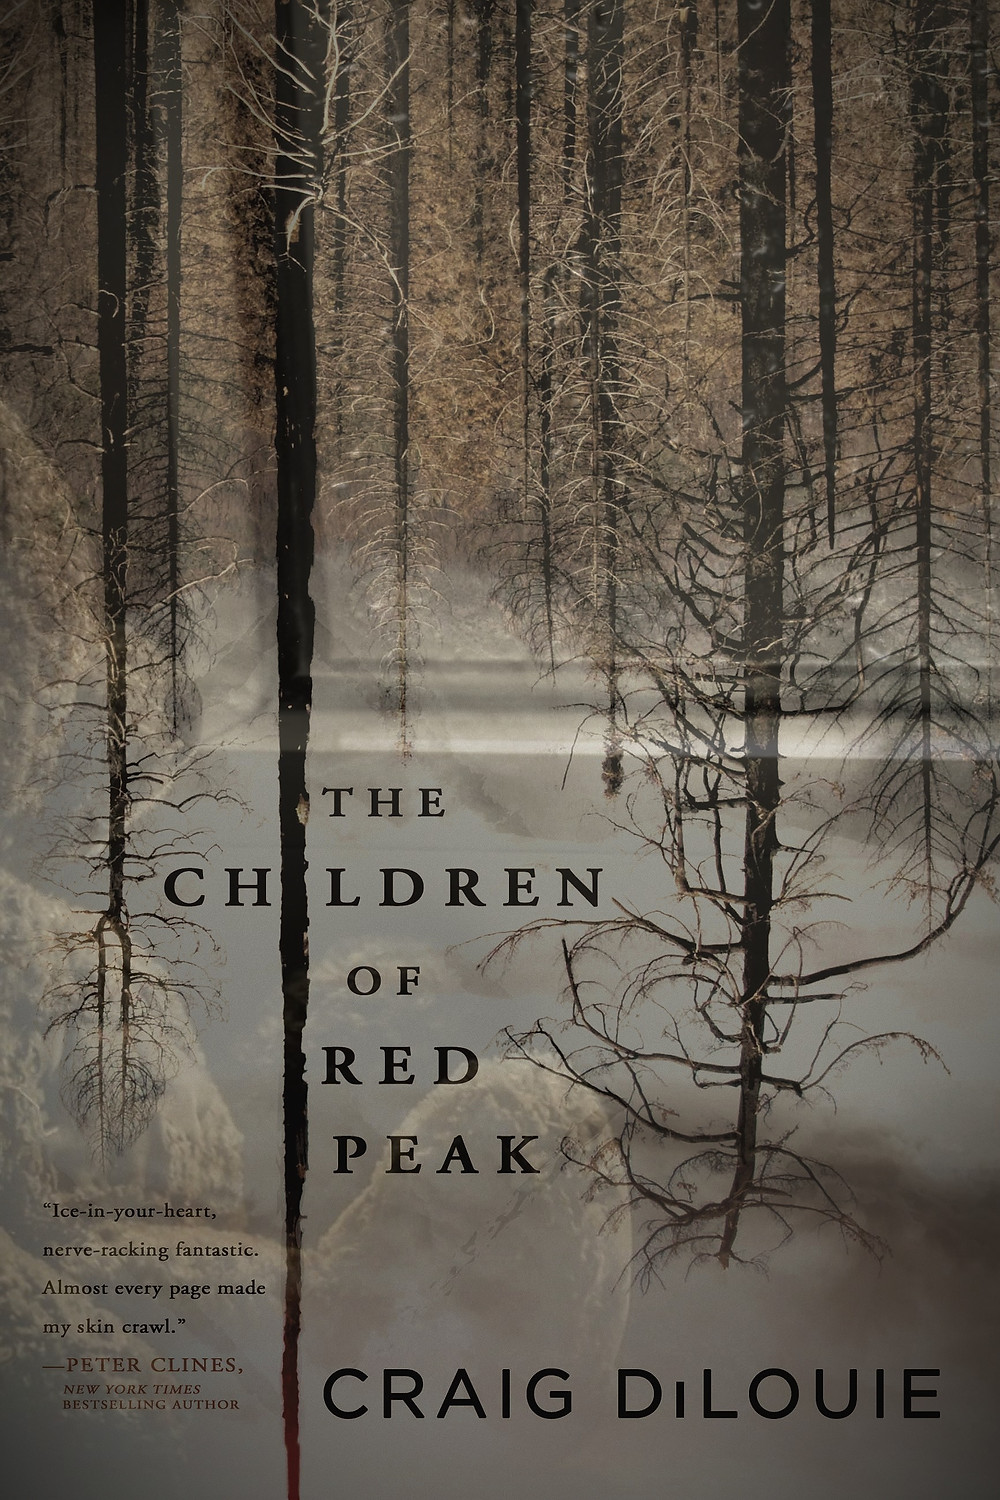 A Horror Book Review from Craig DiLouie's The Children of Red Peak  (Daily Strange Special Cover)